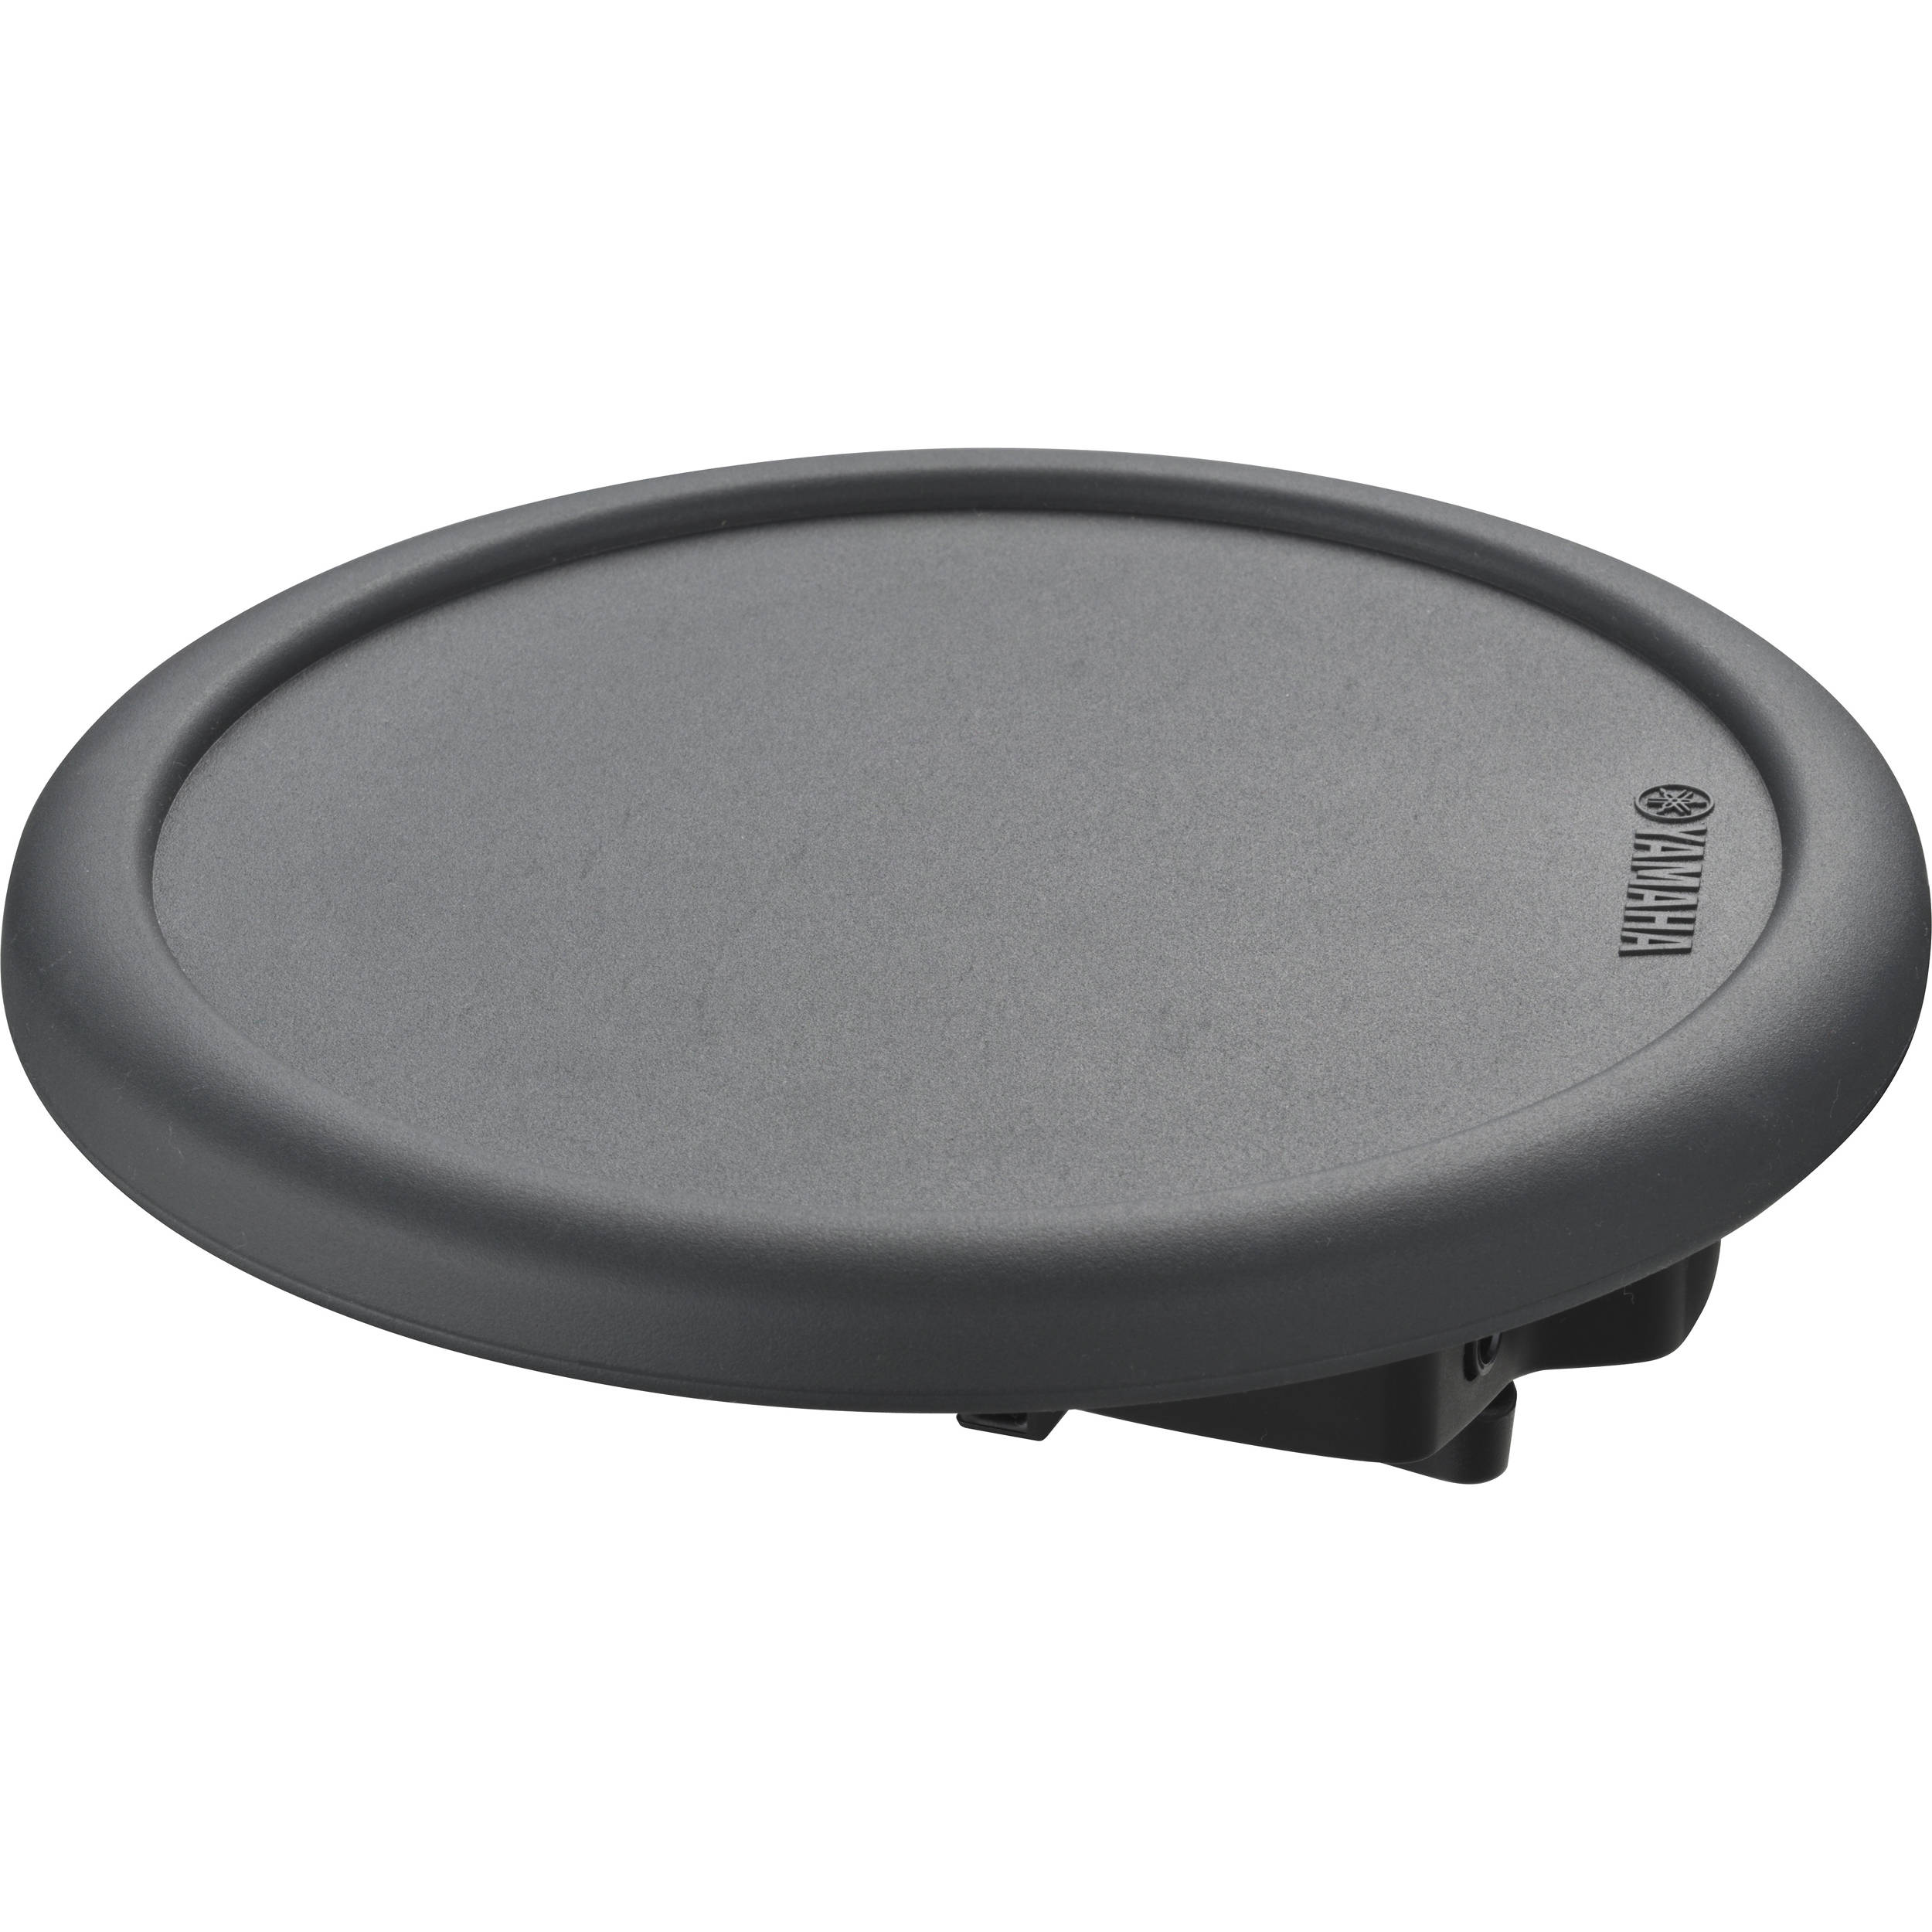 Yamaha tp70 single zone 7 5 inch electronic drum pad tp70 b h for Yamaha drum pads